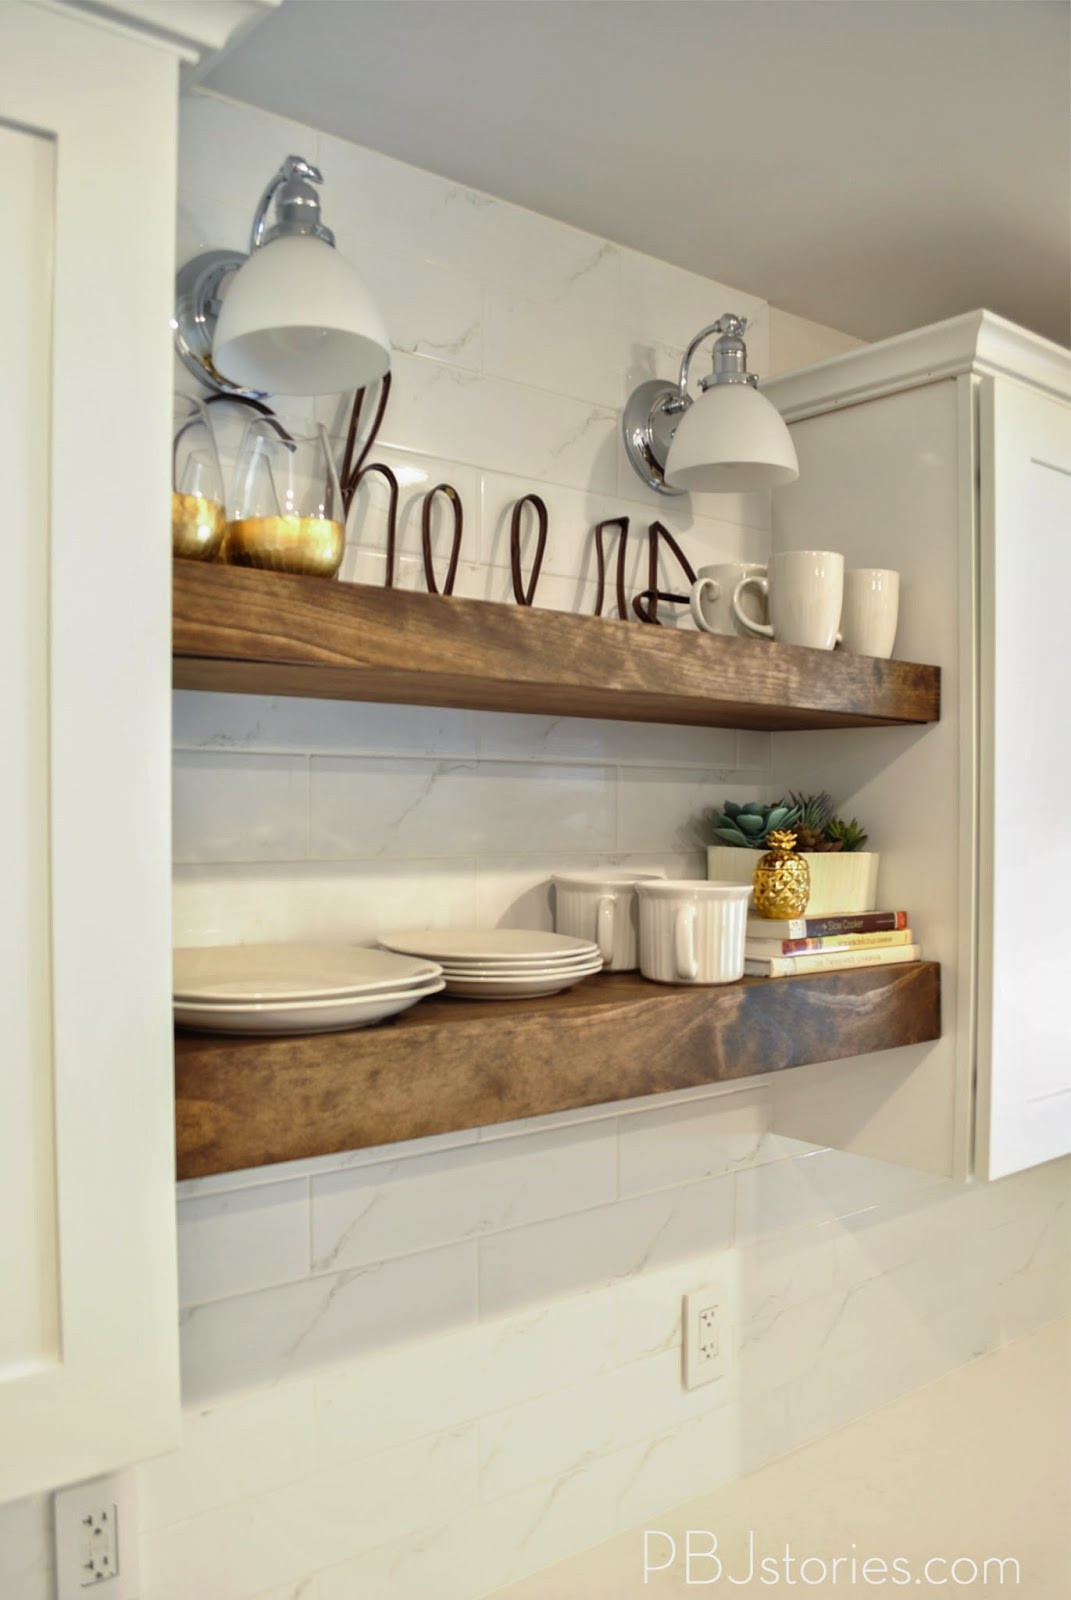 Best ideas about DIY Kitchen Shelves . Save or Pin PBJstories Our DIY Open Kitchen Shelves Now.